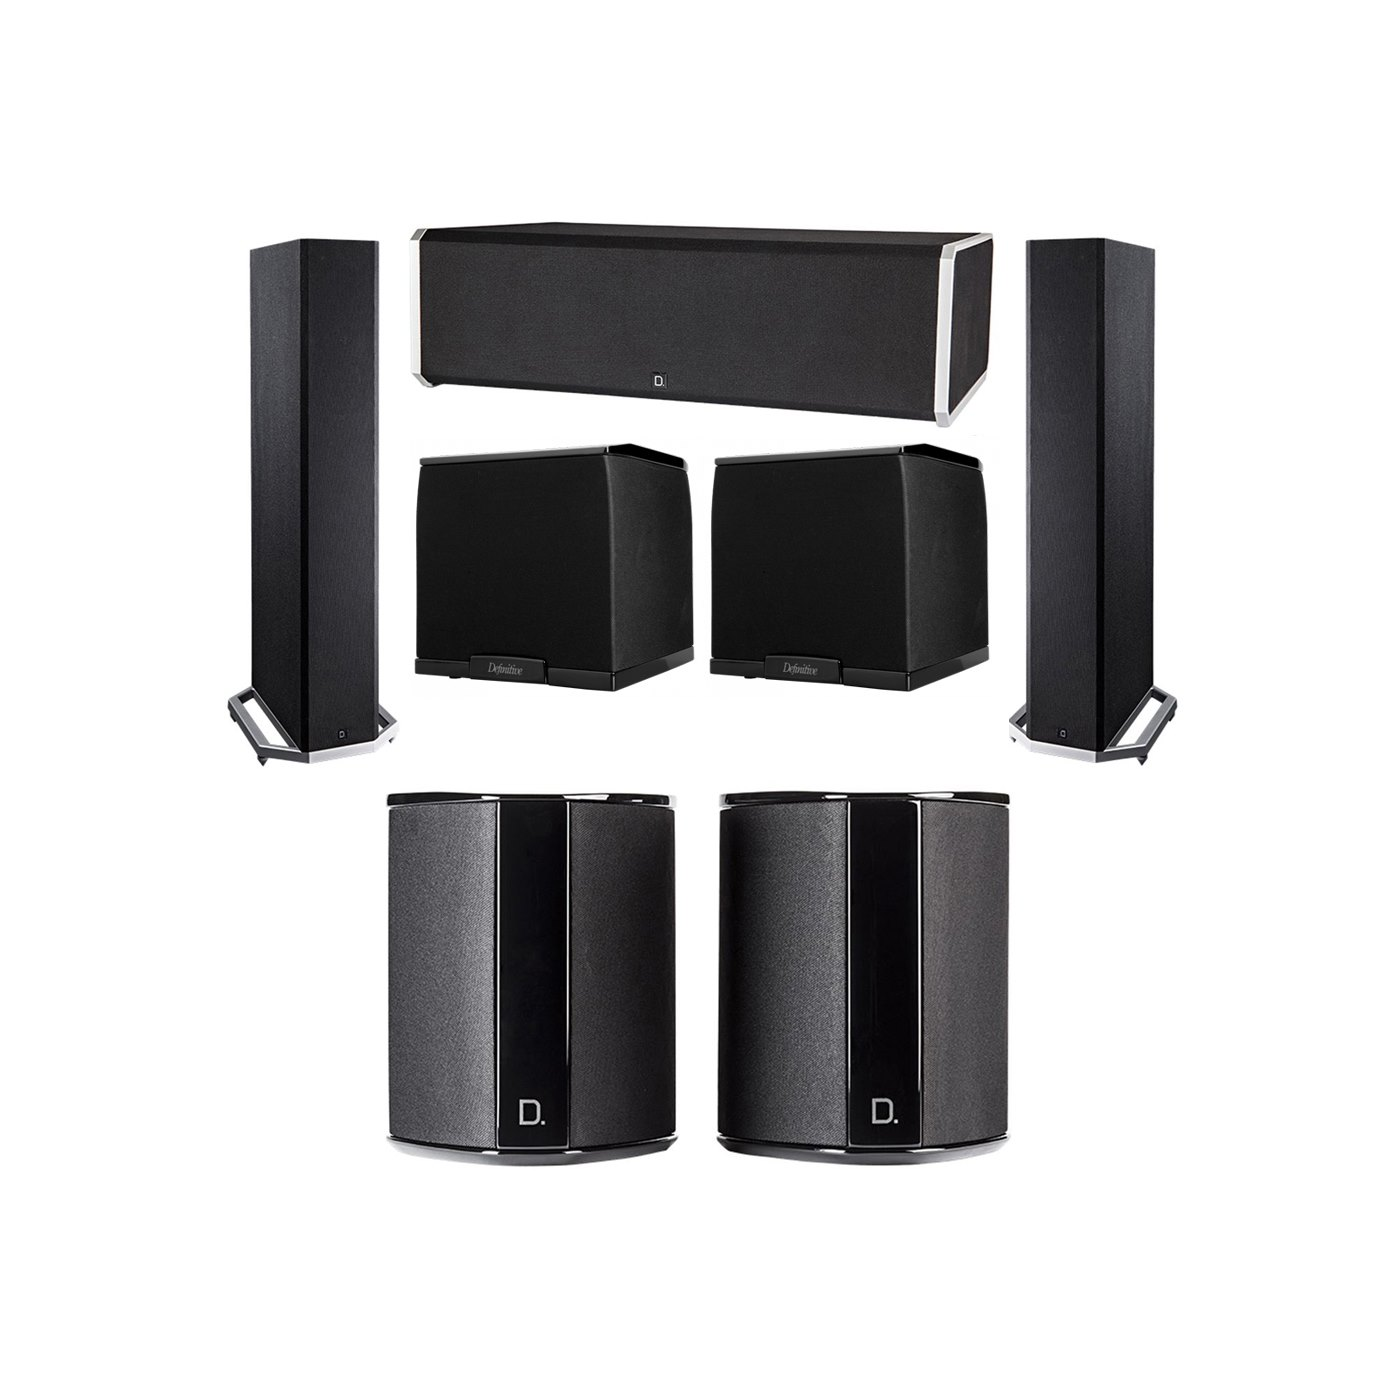 Definitive Technology 5.2 System with 2 BP9020 Tower Speakers, 1 CS9080 Center Channel Speaker, 2 SR9040 Surround Speaker, 2 Definitive Technology SuperCube 2000 Powered Subwoofer